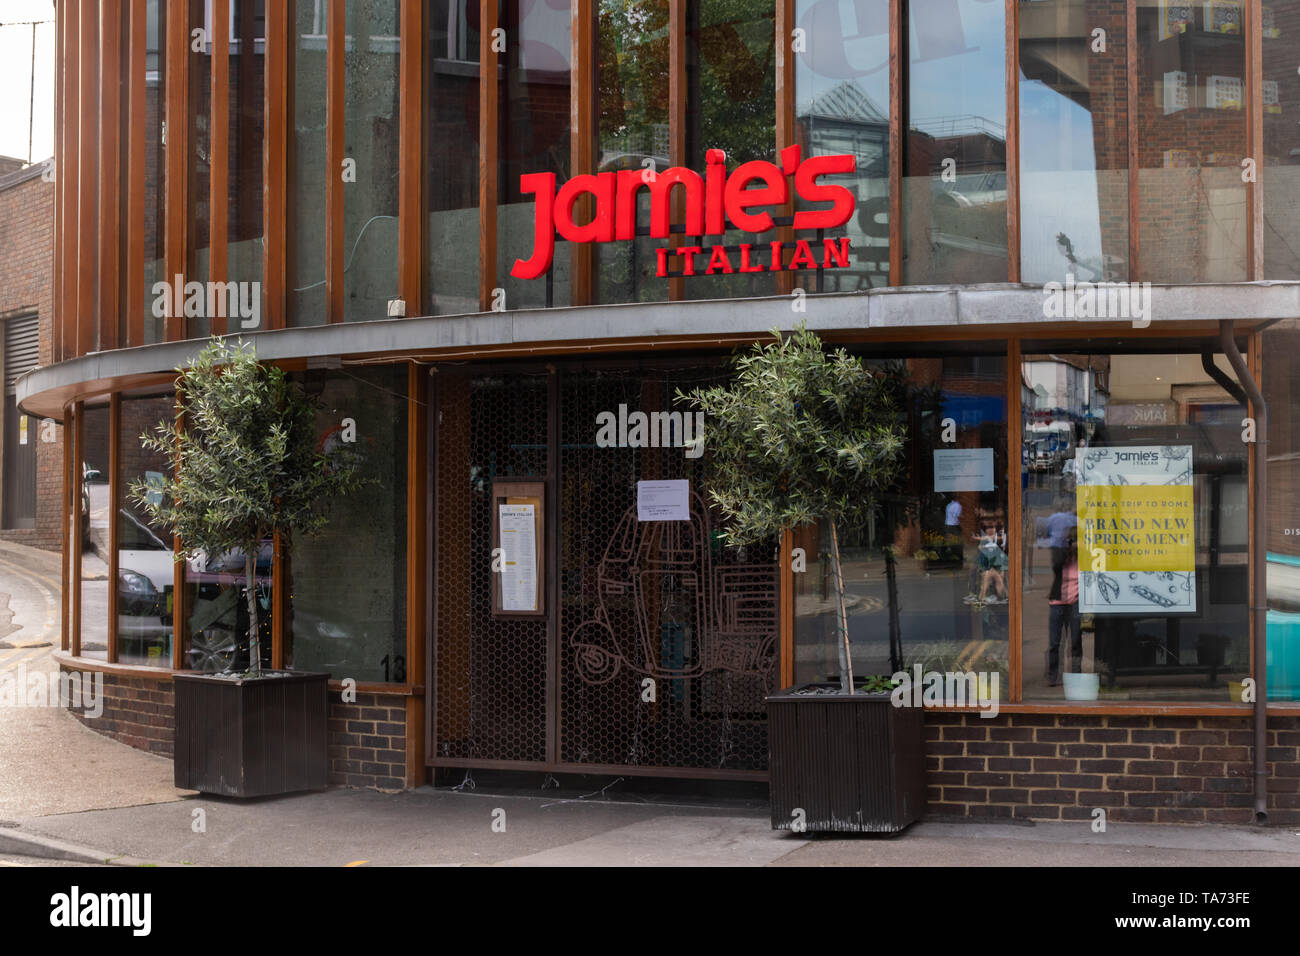 jamies-italian-restaurant-in-the-surrey-town-of-guildford-has-closed-due-to-the-restaurant-chain-owned-by-chef-jamie-oliver-going-into-administration-a-notice-appeared-on-21st-may-2019-on-the-front-door-explaining-that-the-restaurant-has-now-closed-and-naming-the-administrators-TA73FE.jpg